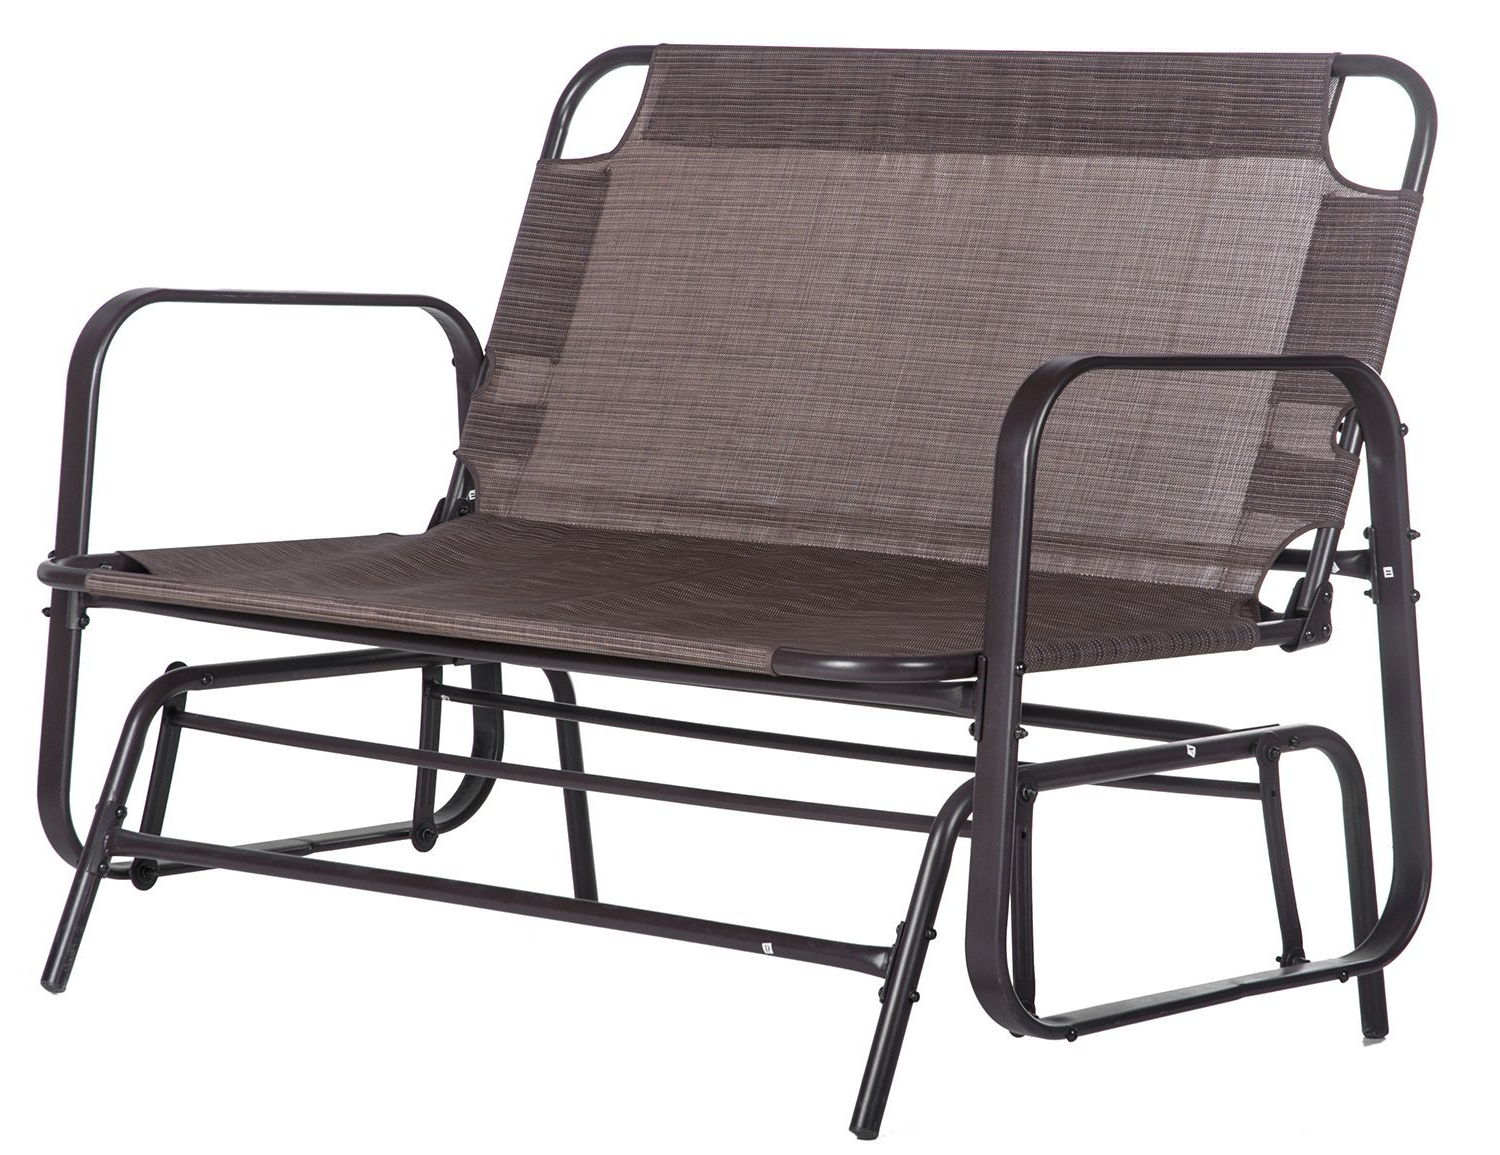 Buy Merax Patio Loveseat Glider Rocking Chair Garden Outdoor Pertaining To Most Current Outdoor Loveseat Gliders With Cushion (View 24 of 25)